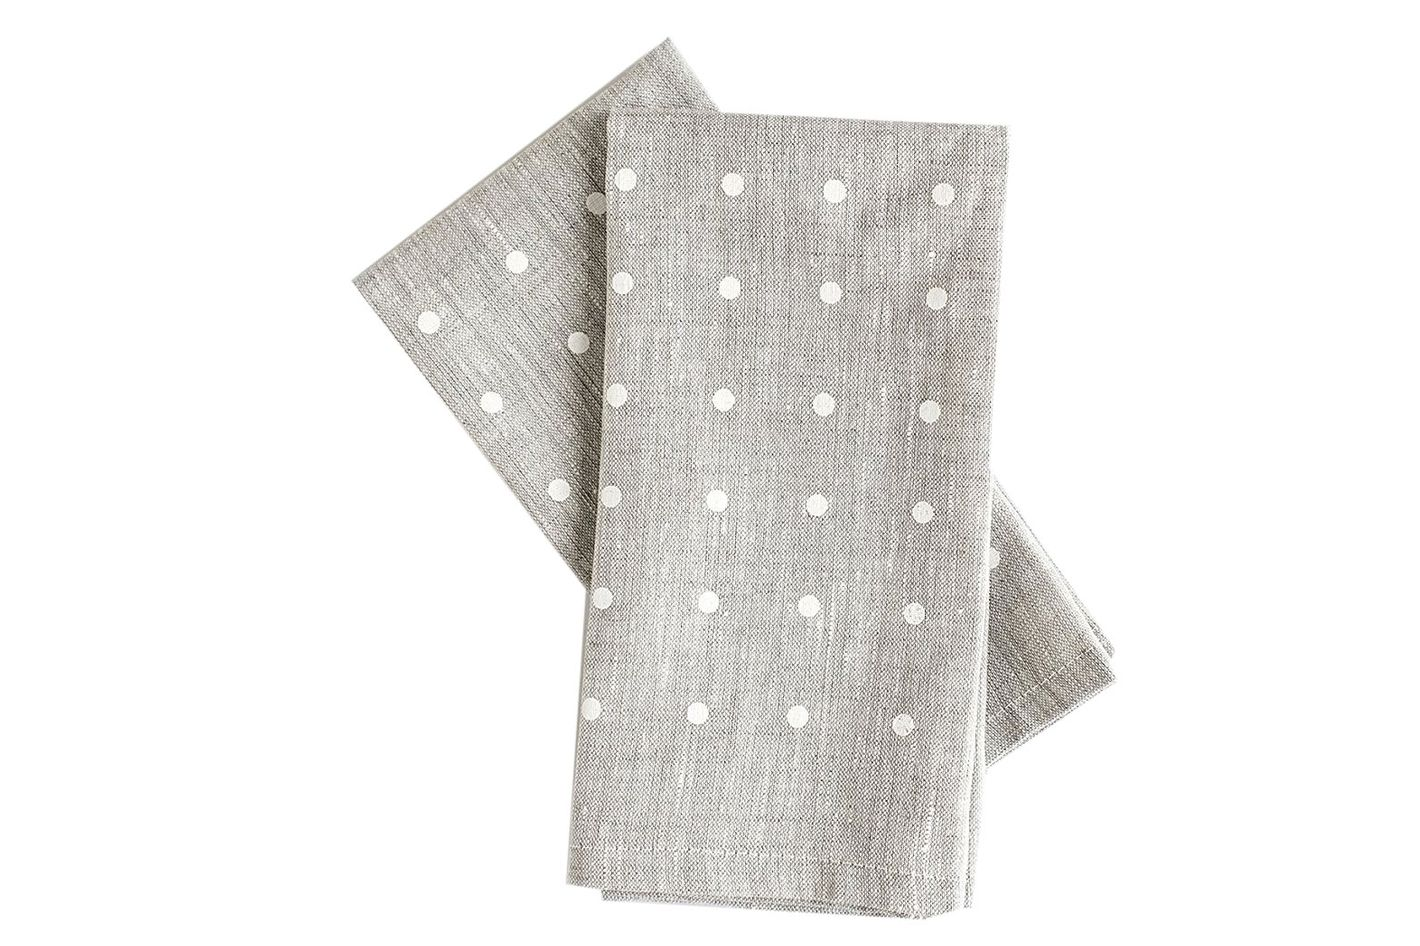 Celina Mancurti White Dots Napkins, Set of 2